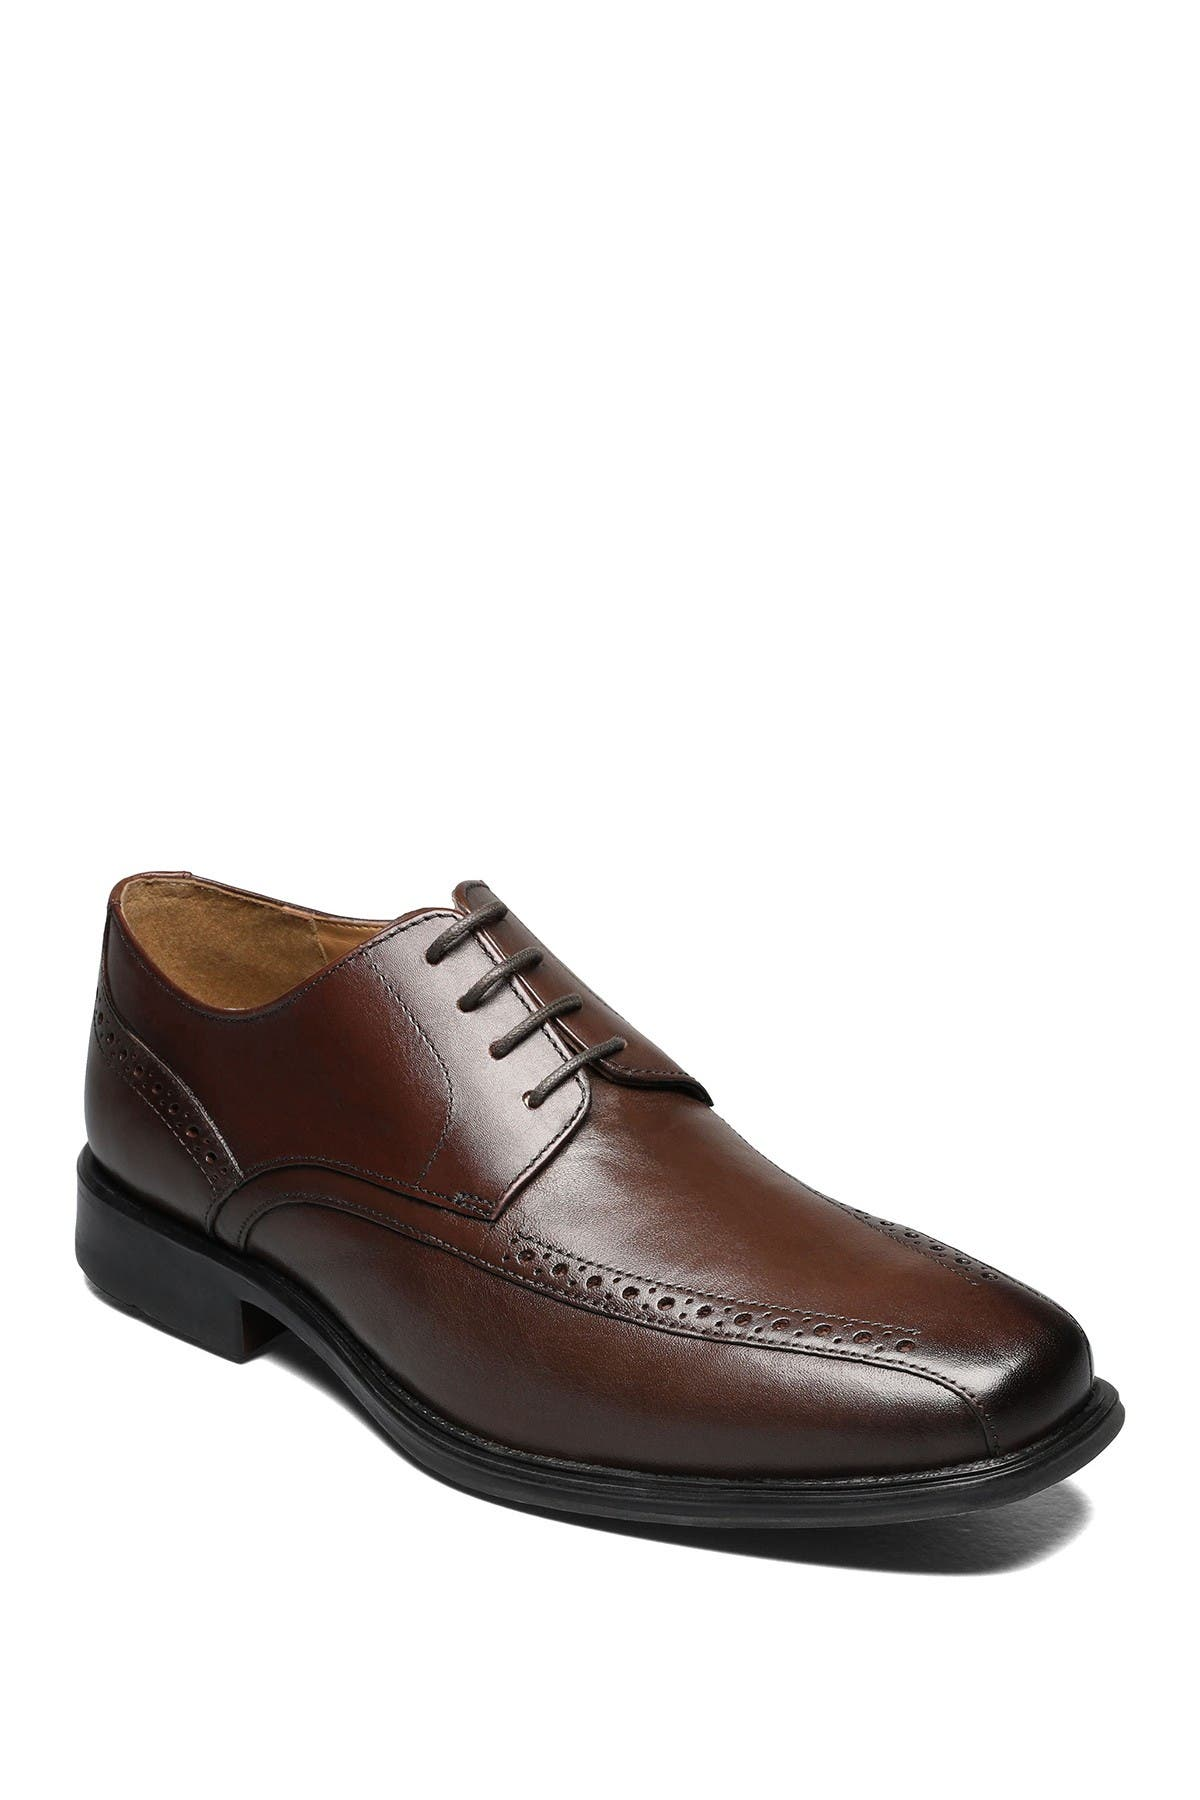 Image of Stacy Adams Irving Apron Toe Oxford